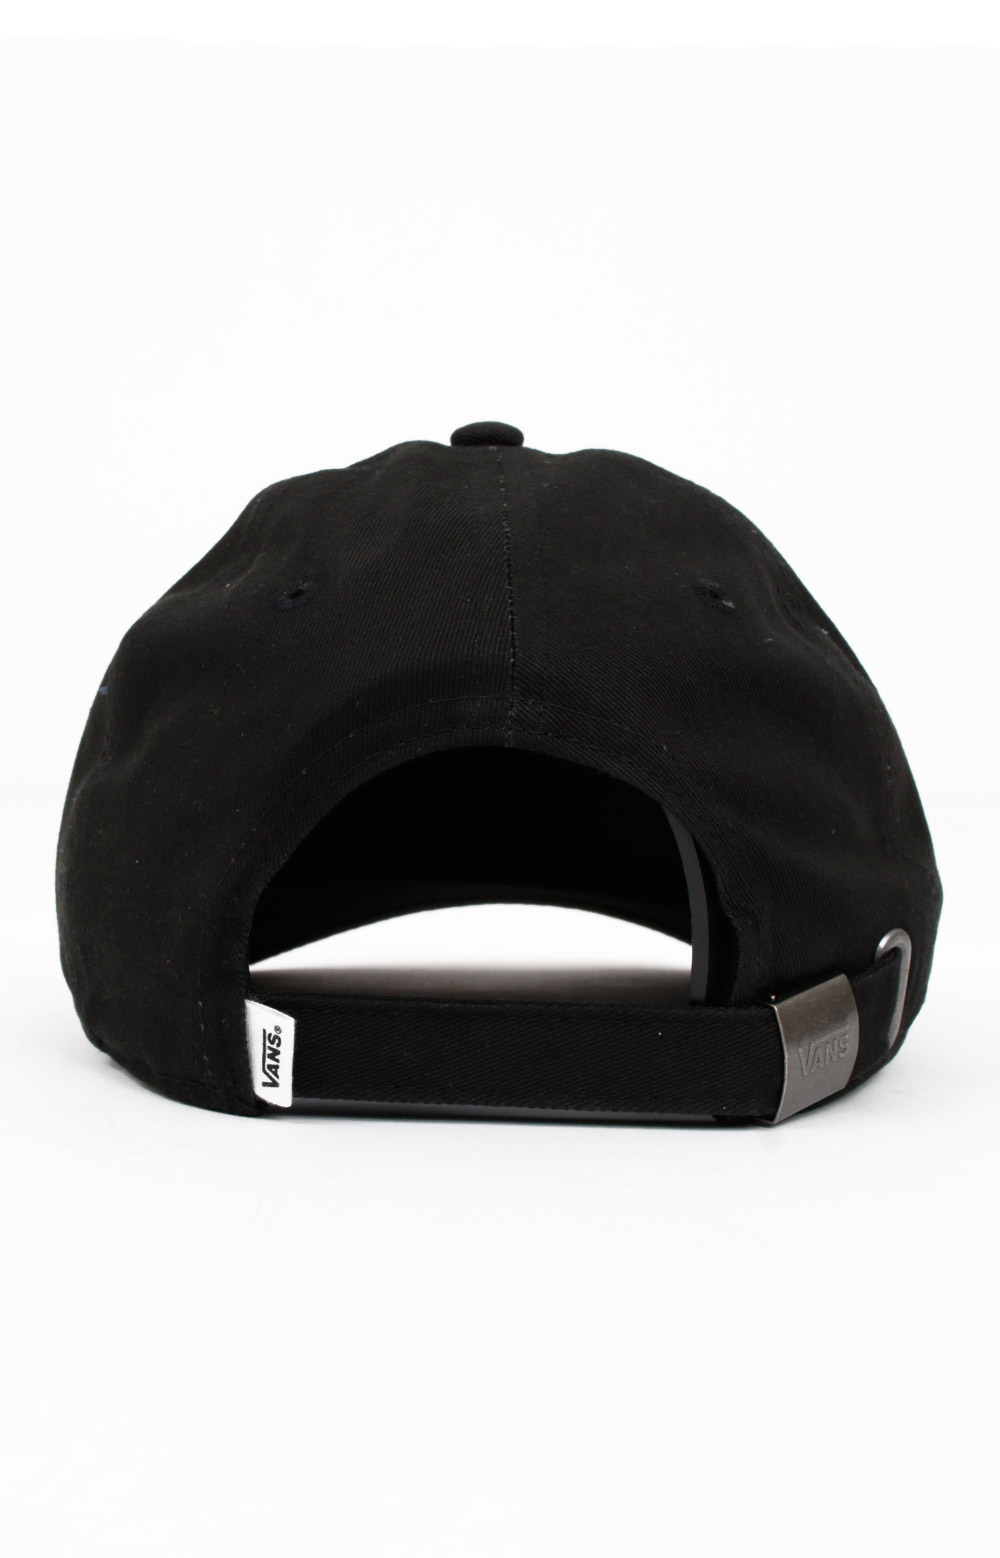 Court Side Dad Hat - Black/Flame 2